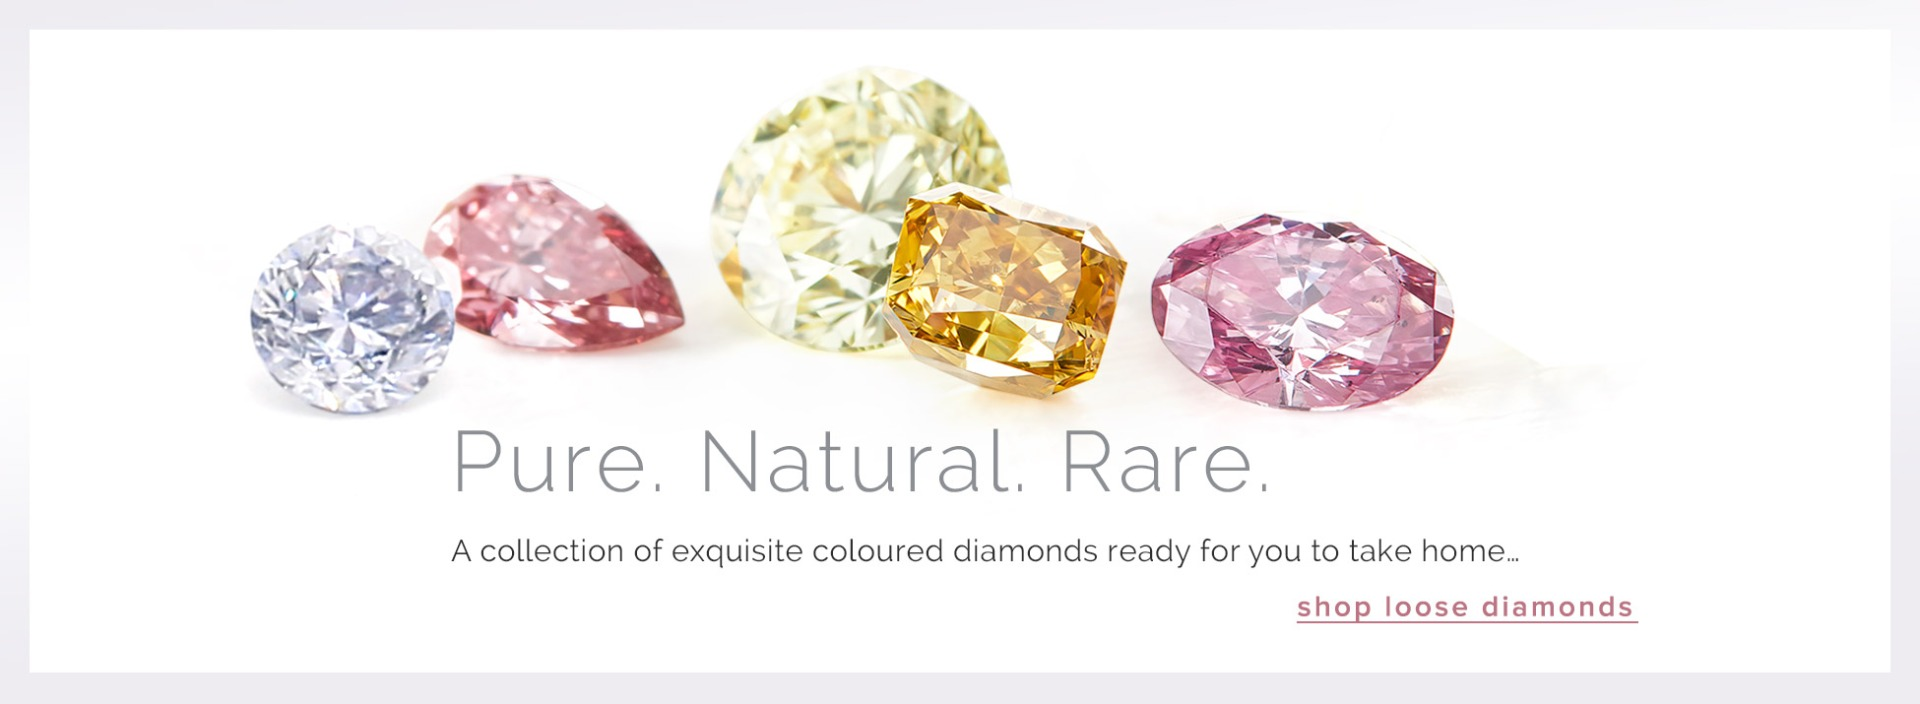 Natural loose diamonds from the coloured diamond specialists